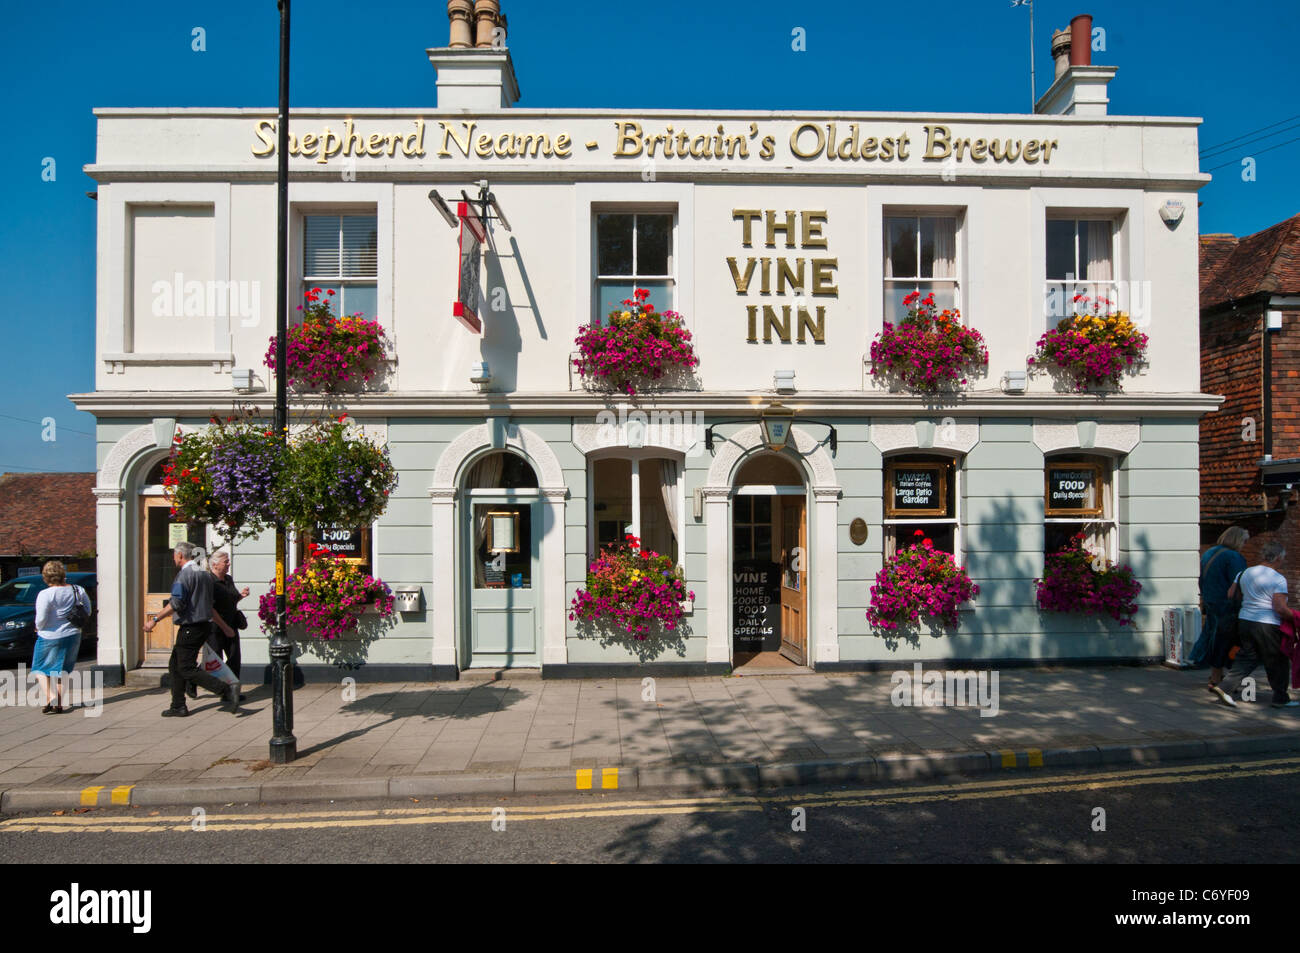 The Vine Inn Shepherd Neame Pub Tenterden Kent UK Pubs - Stock Image